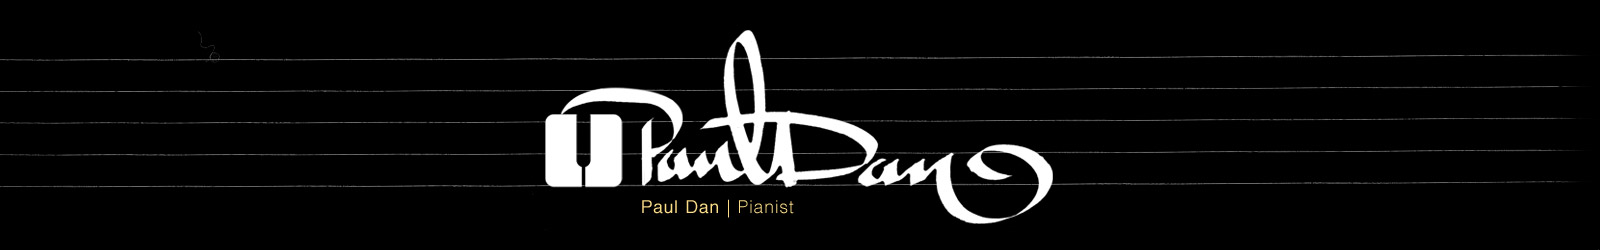 Paul Dan / Pianist